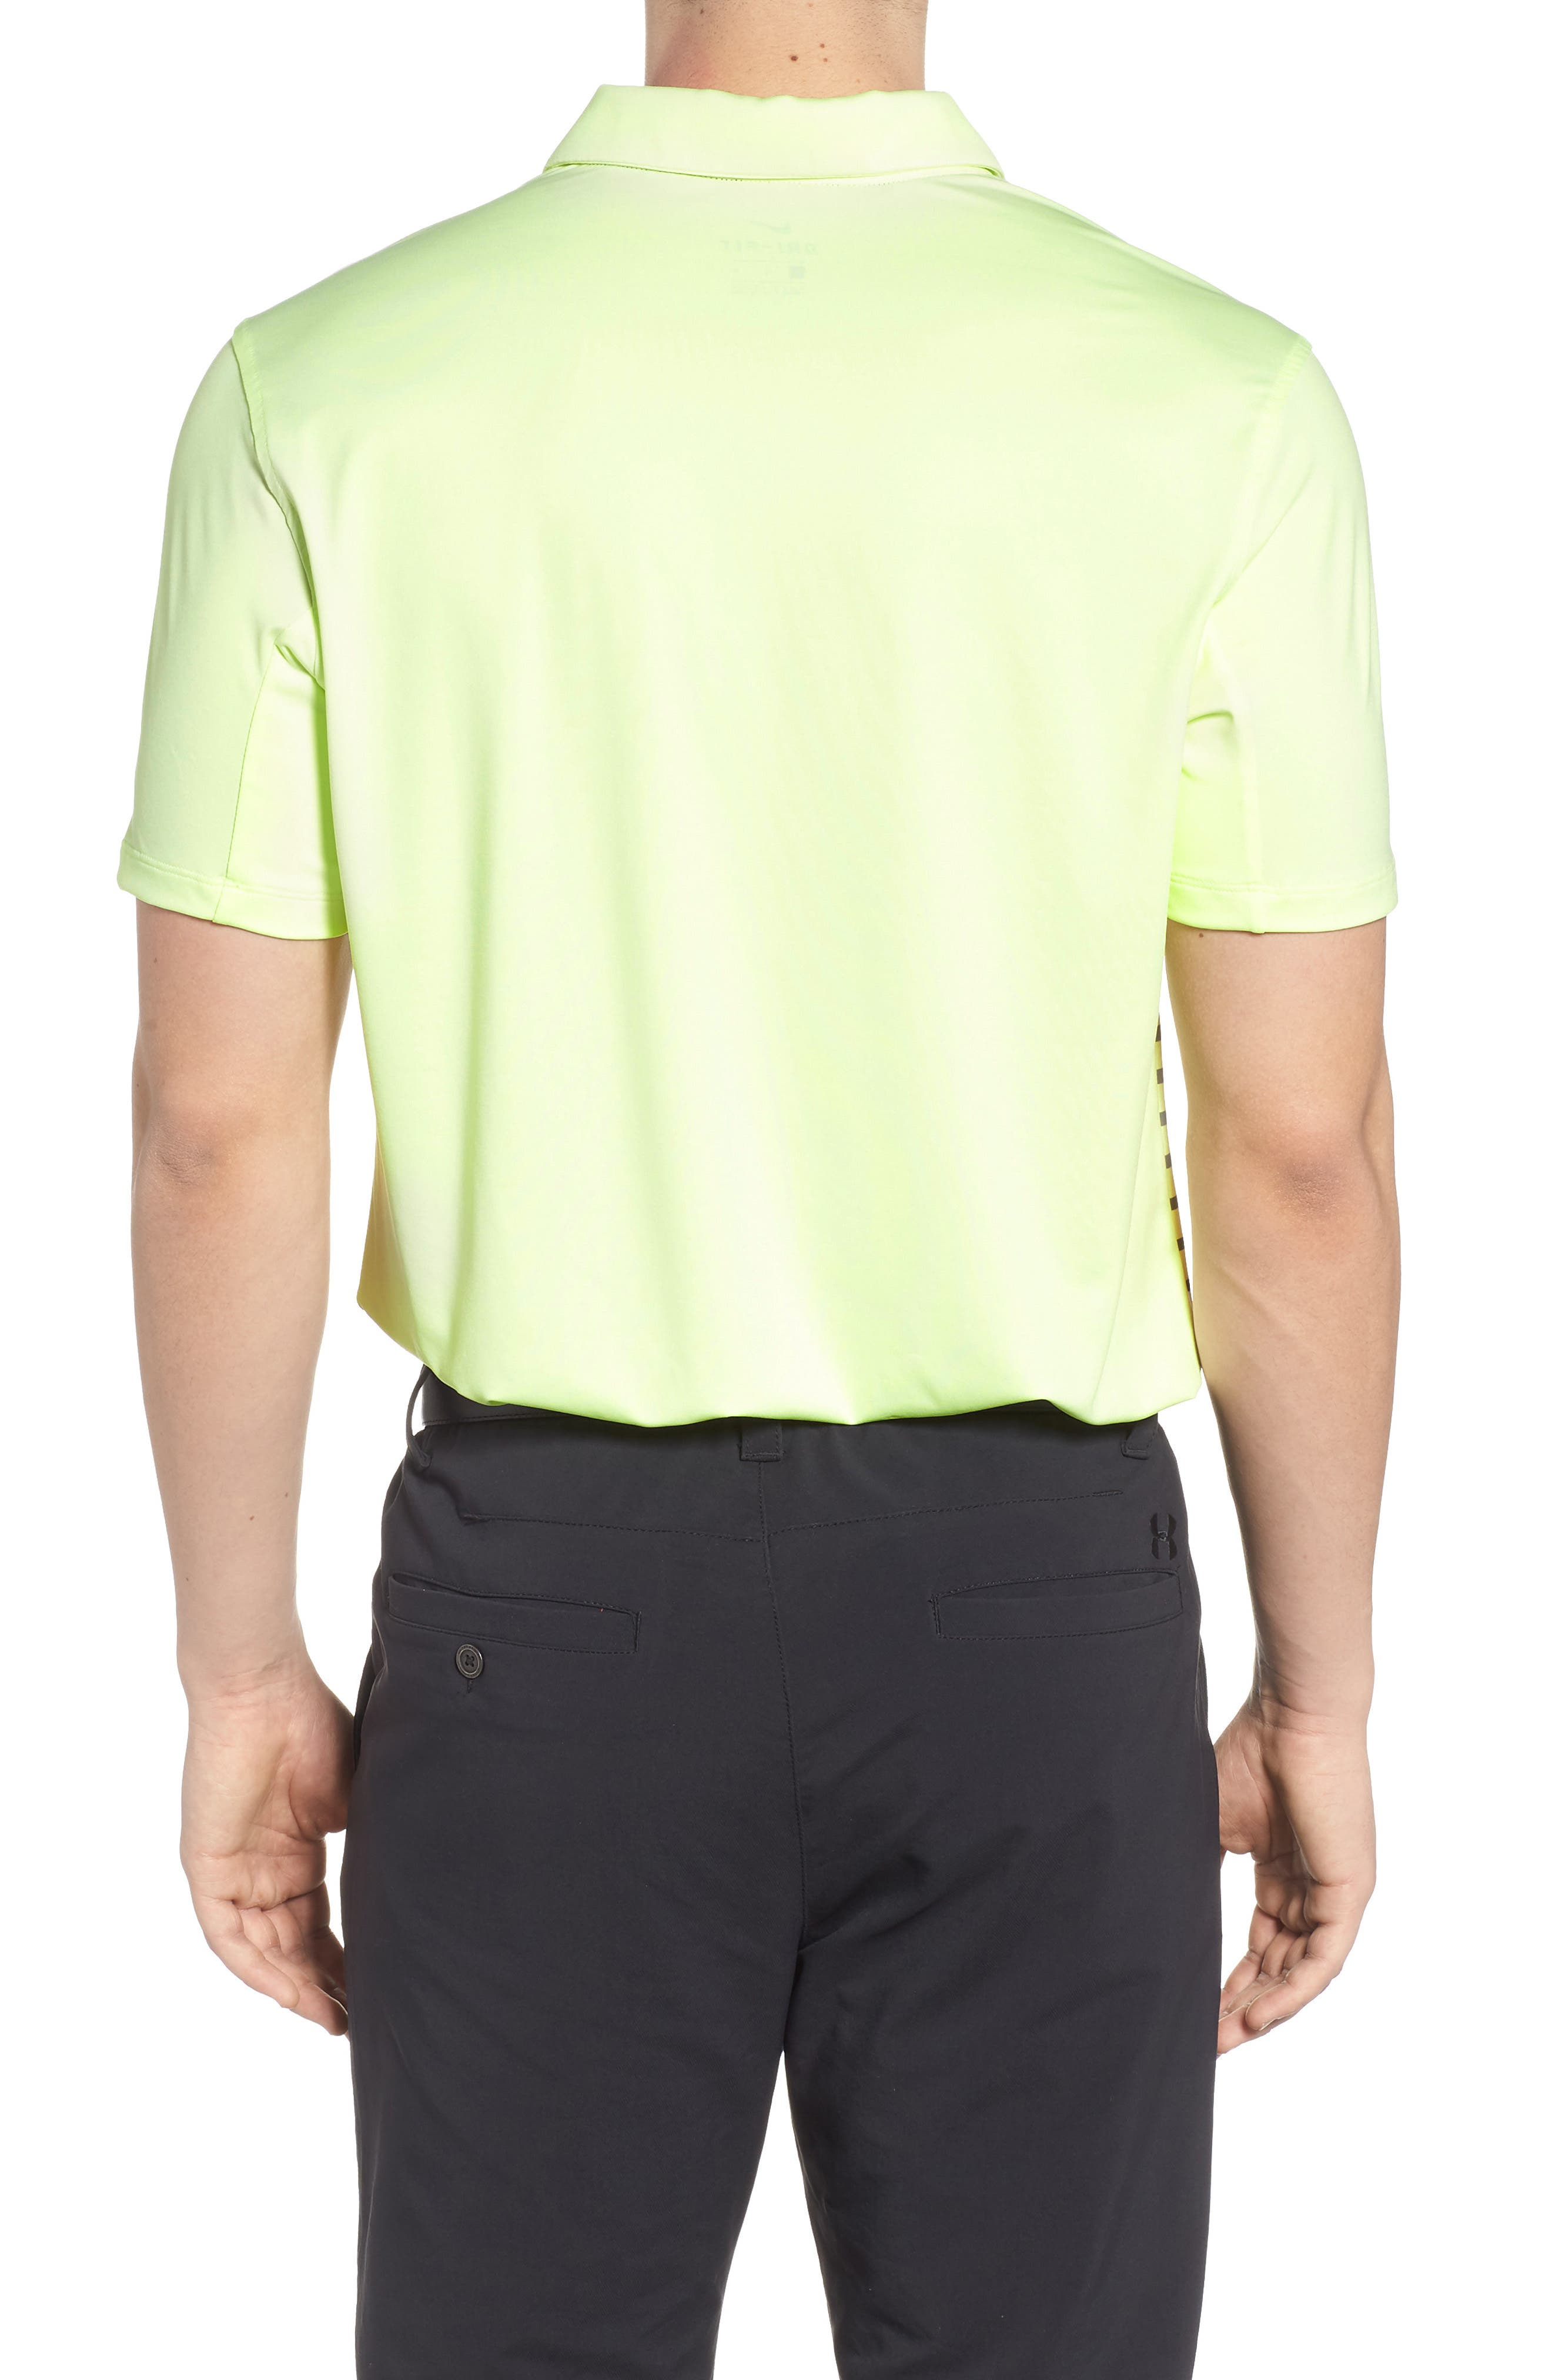 Dry Polo Shirt,                             Alternate thumbnail 2, color,                             Barely Volt/ Cool Grey/ Silver